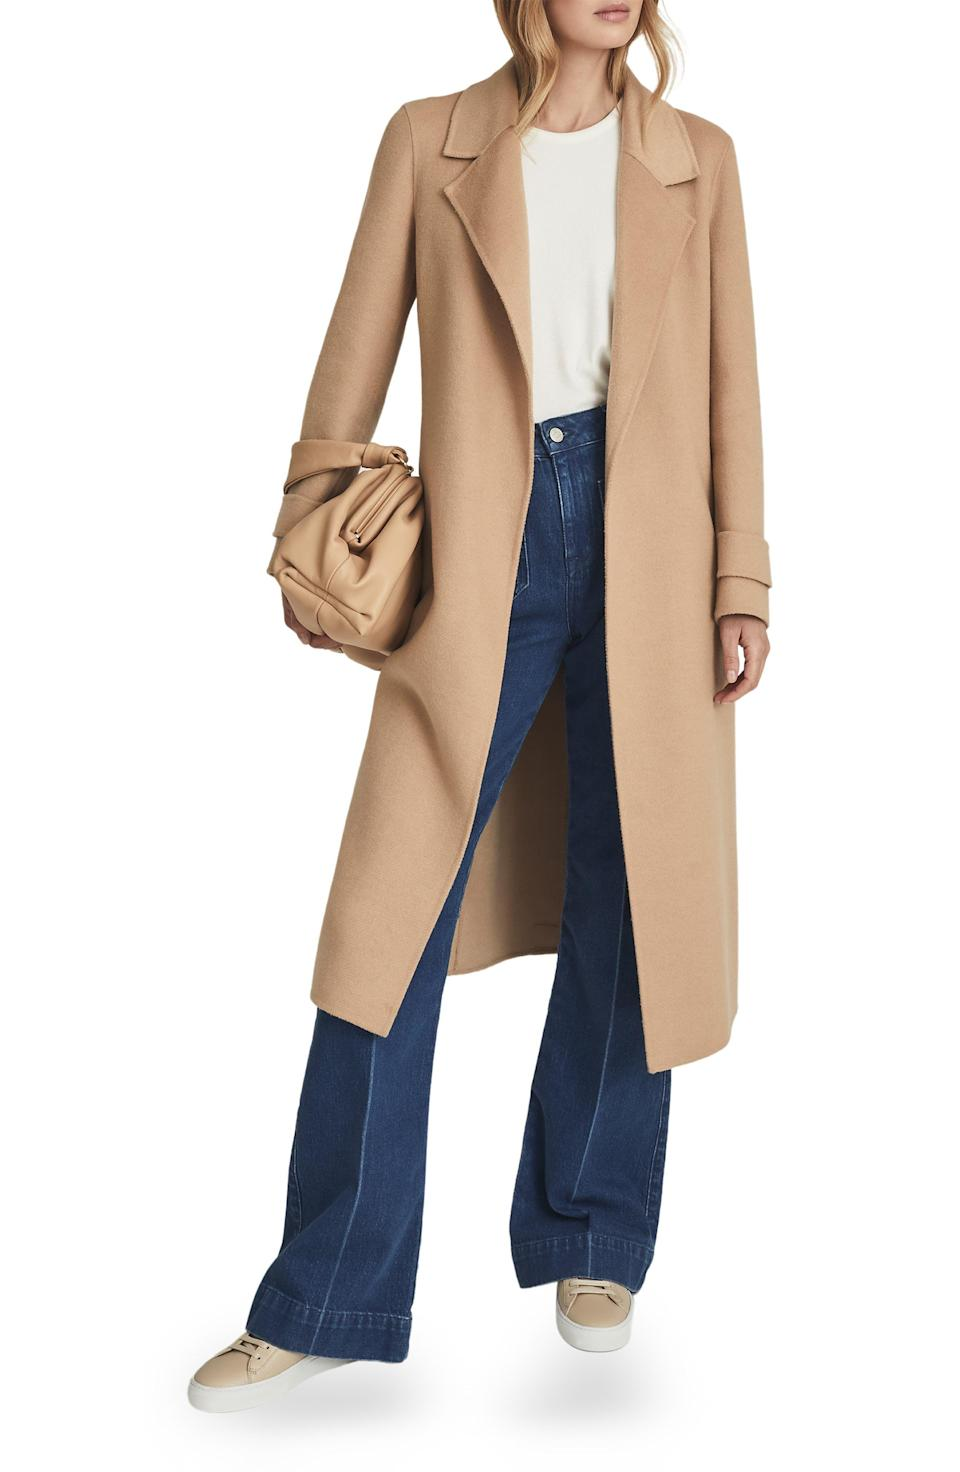 """<p><strong>REISS</strong></p><p>nordstrom.com</p><p><a href=""""https://go.redirectingat.com?id=74968X1596630&url=https%3A%2F%2Fwww.nordstrom.com%2Fs%2Freiss-leah-wool-blend-wrap-coat%2F5911720&sref=https%3A%2F%2Fwww.harpersbazaar.com%2Ffashion%2Ftrends%2Fg36946278%2Fnordstrom-anniversary-sale-fashion%2F"""" rel=""""nofollow noopener"""" target=""""_blank"""" data-ylk=""""slk:Shop Now"""" class=""""link rapid-noclick-resp"""">Shop Now</a></p><p><strong>Sale: $370<br></strong></p><p><strong>After Sale: $620</strong></p><p>Camel coats never go out of style. We're eyeing this Reiss number for its tailored silhouette and removable belt. </p>"""